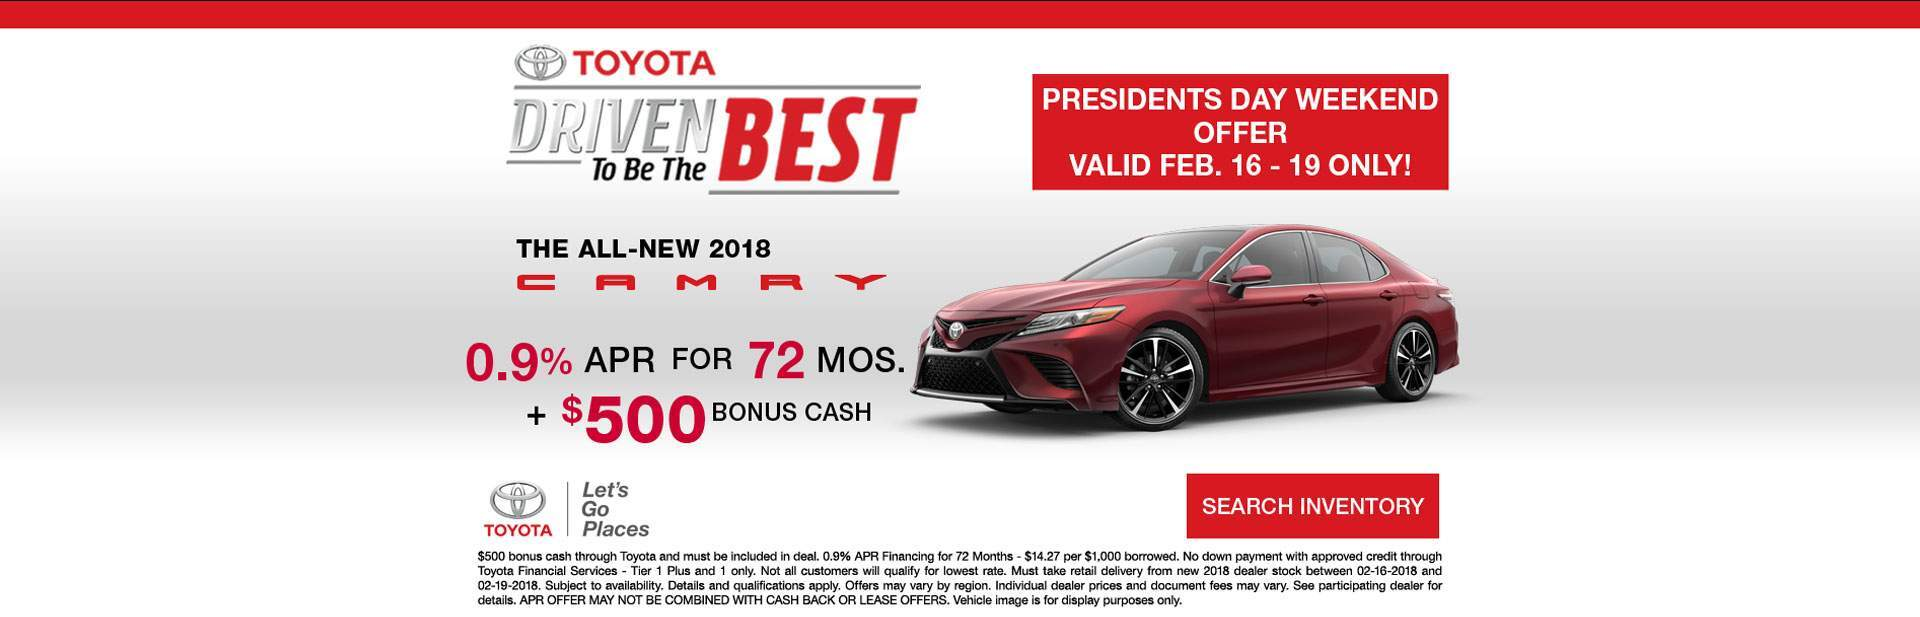 Presidents Day Event - Camry